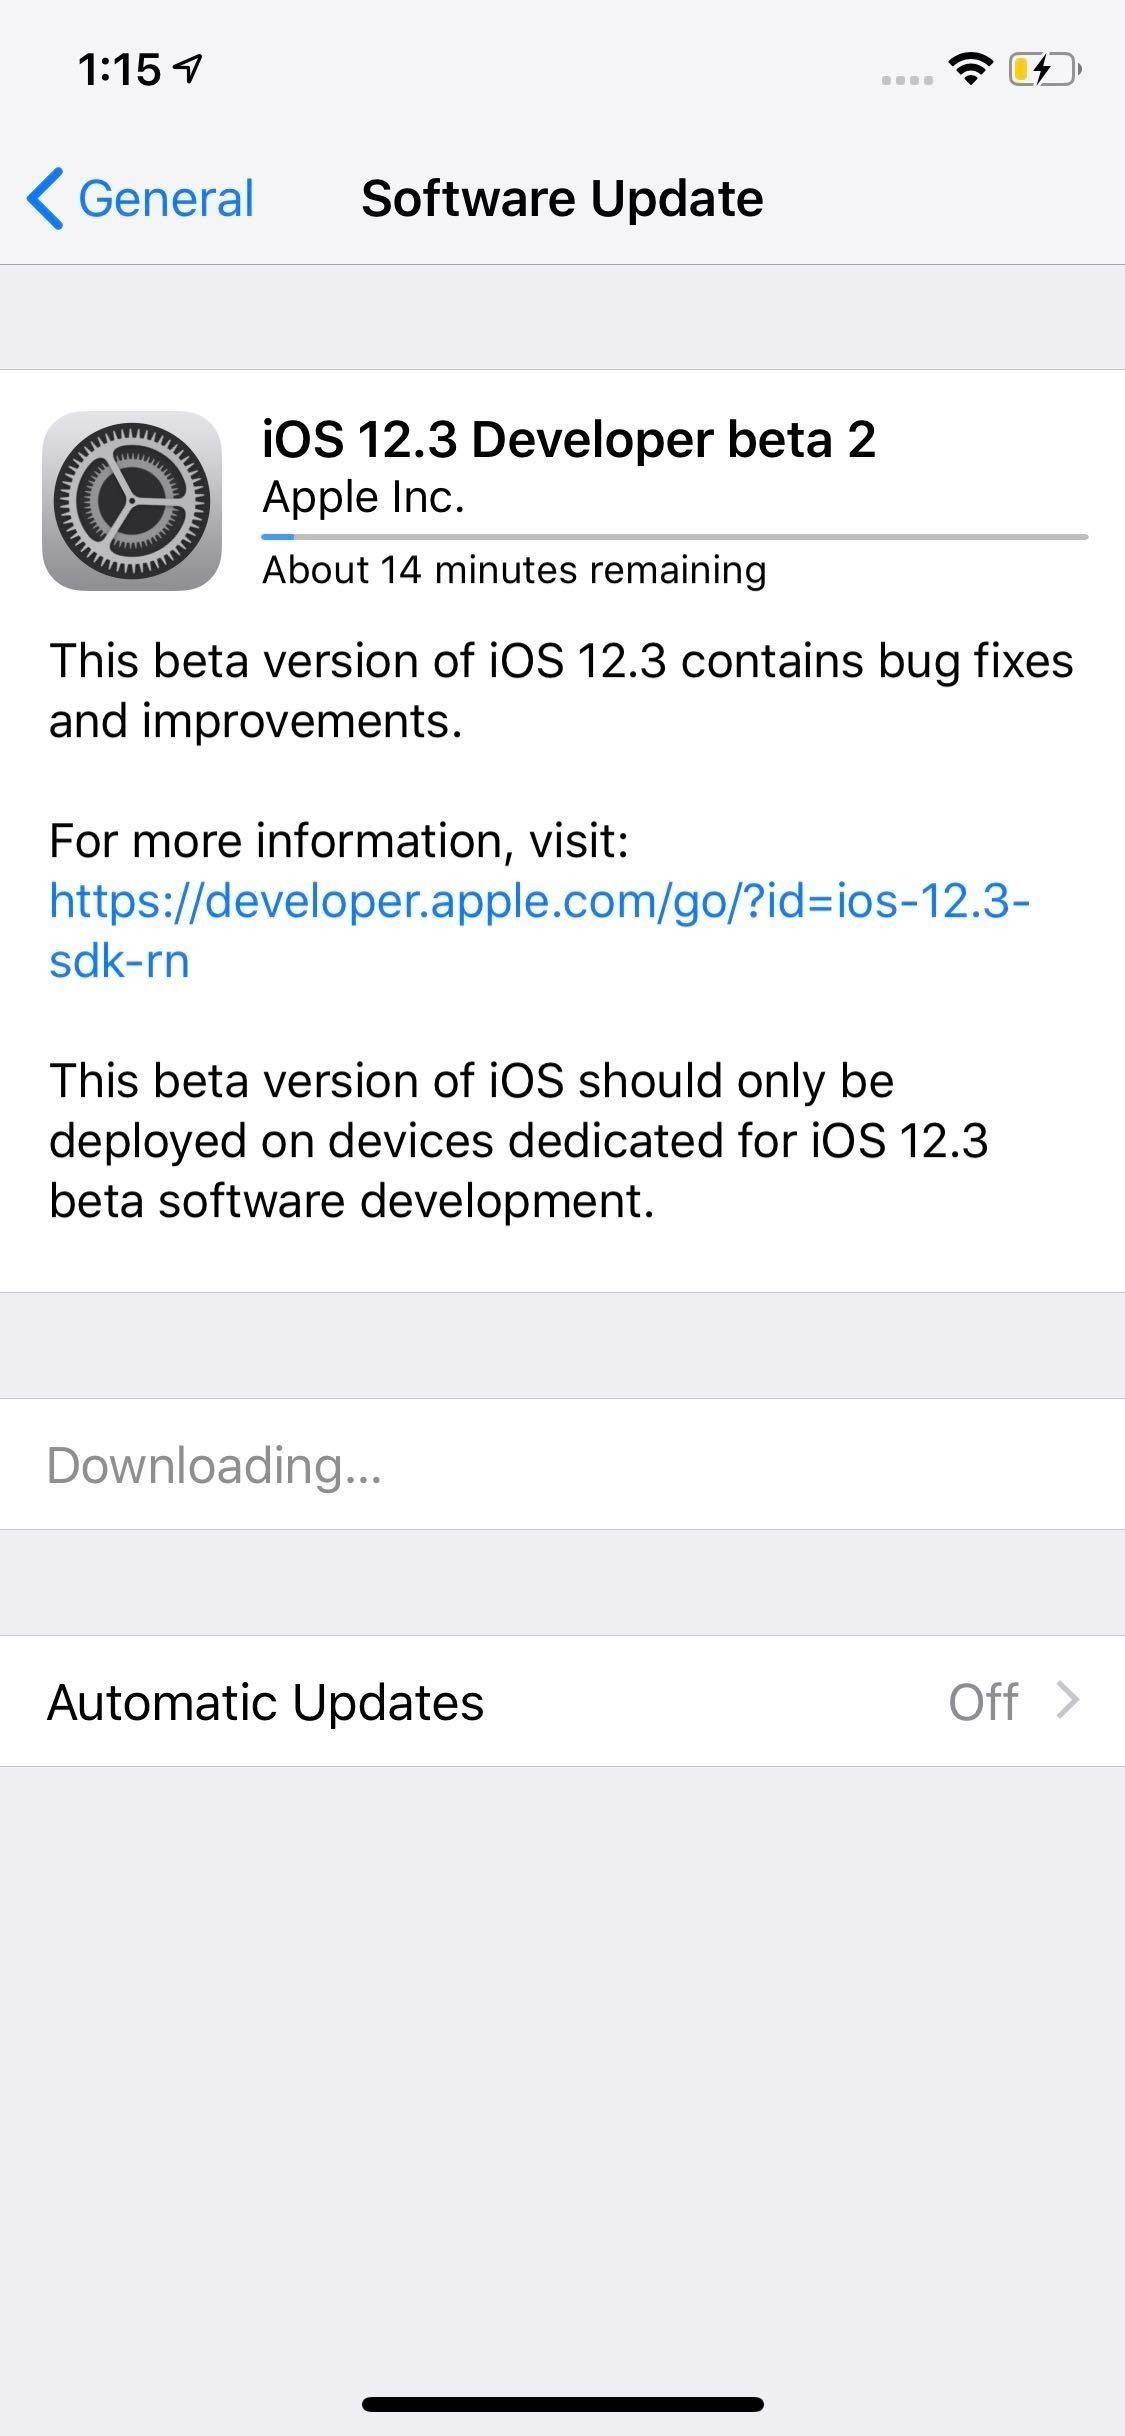 Apple Just Released iOS 12.3 Developer Beta 2 Today, Includes Date & Time Features & Updates to Wallet Transactions